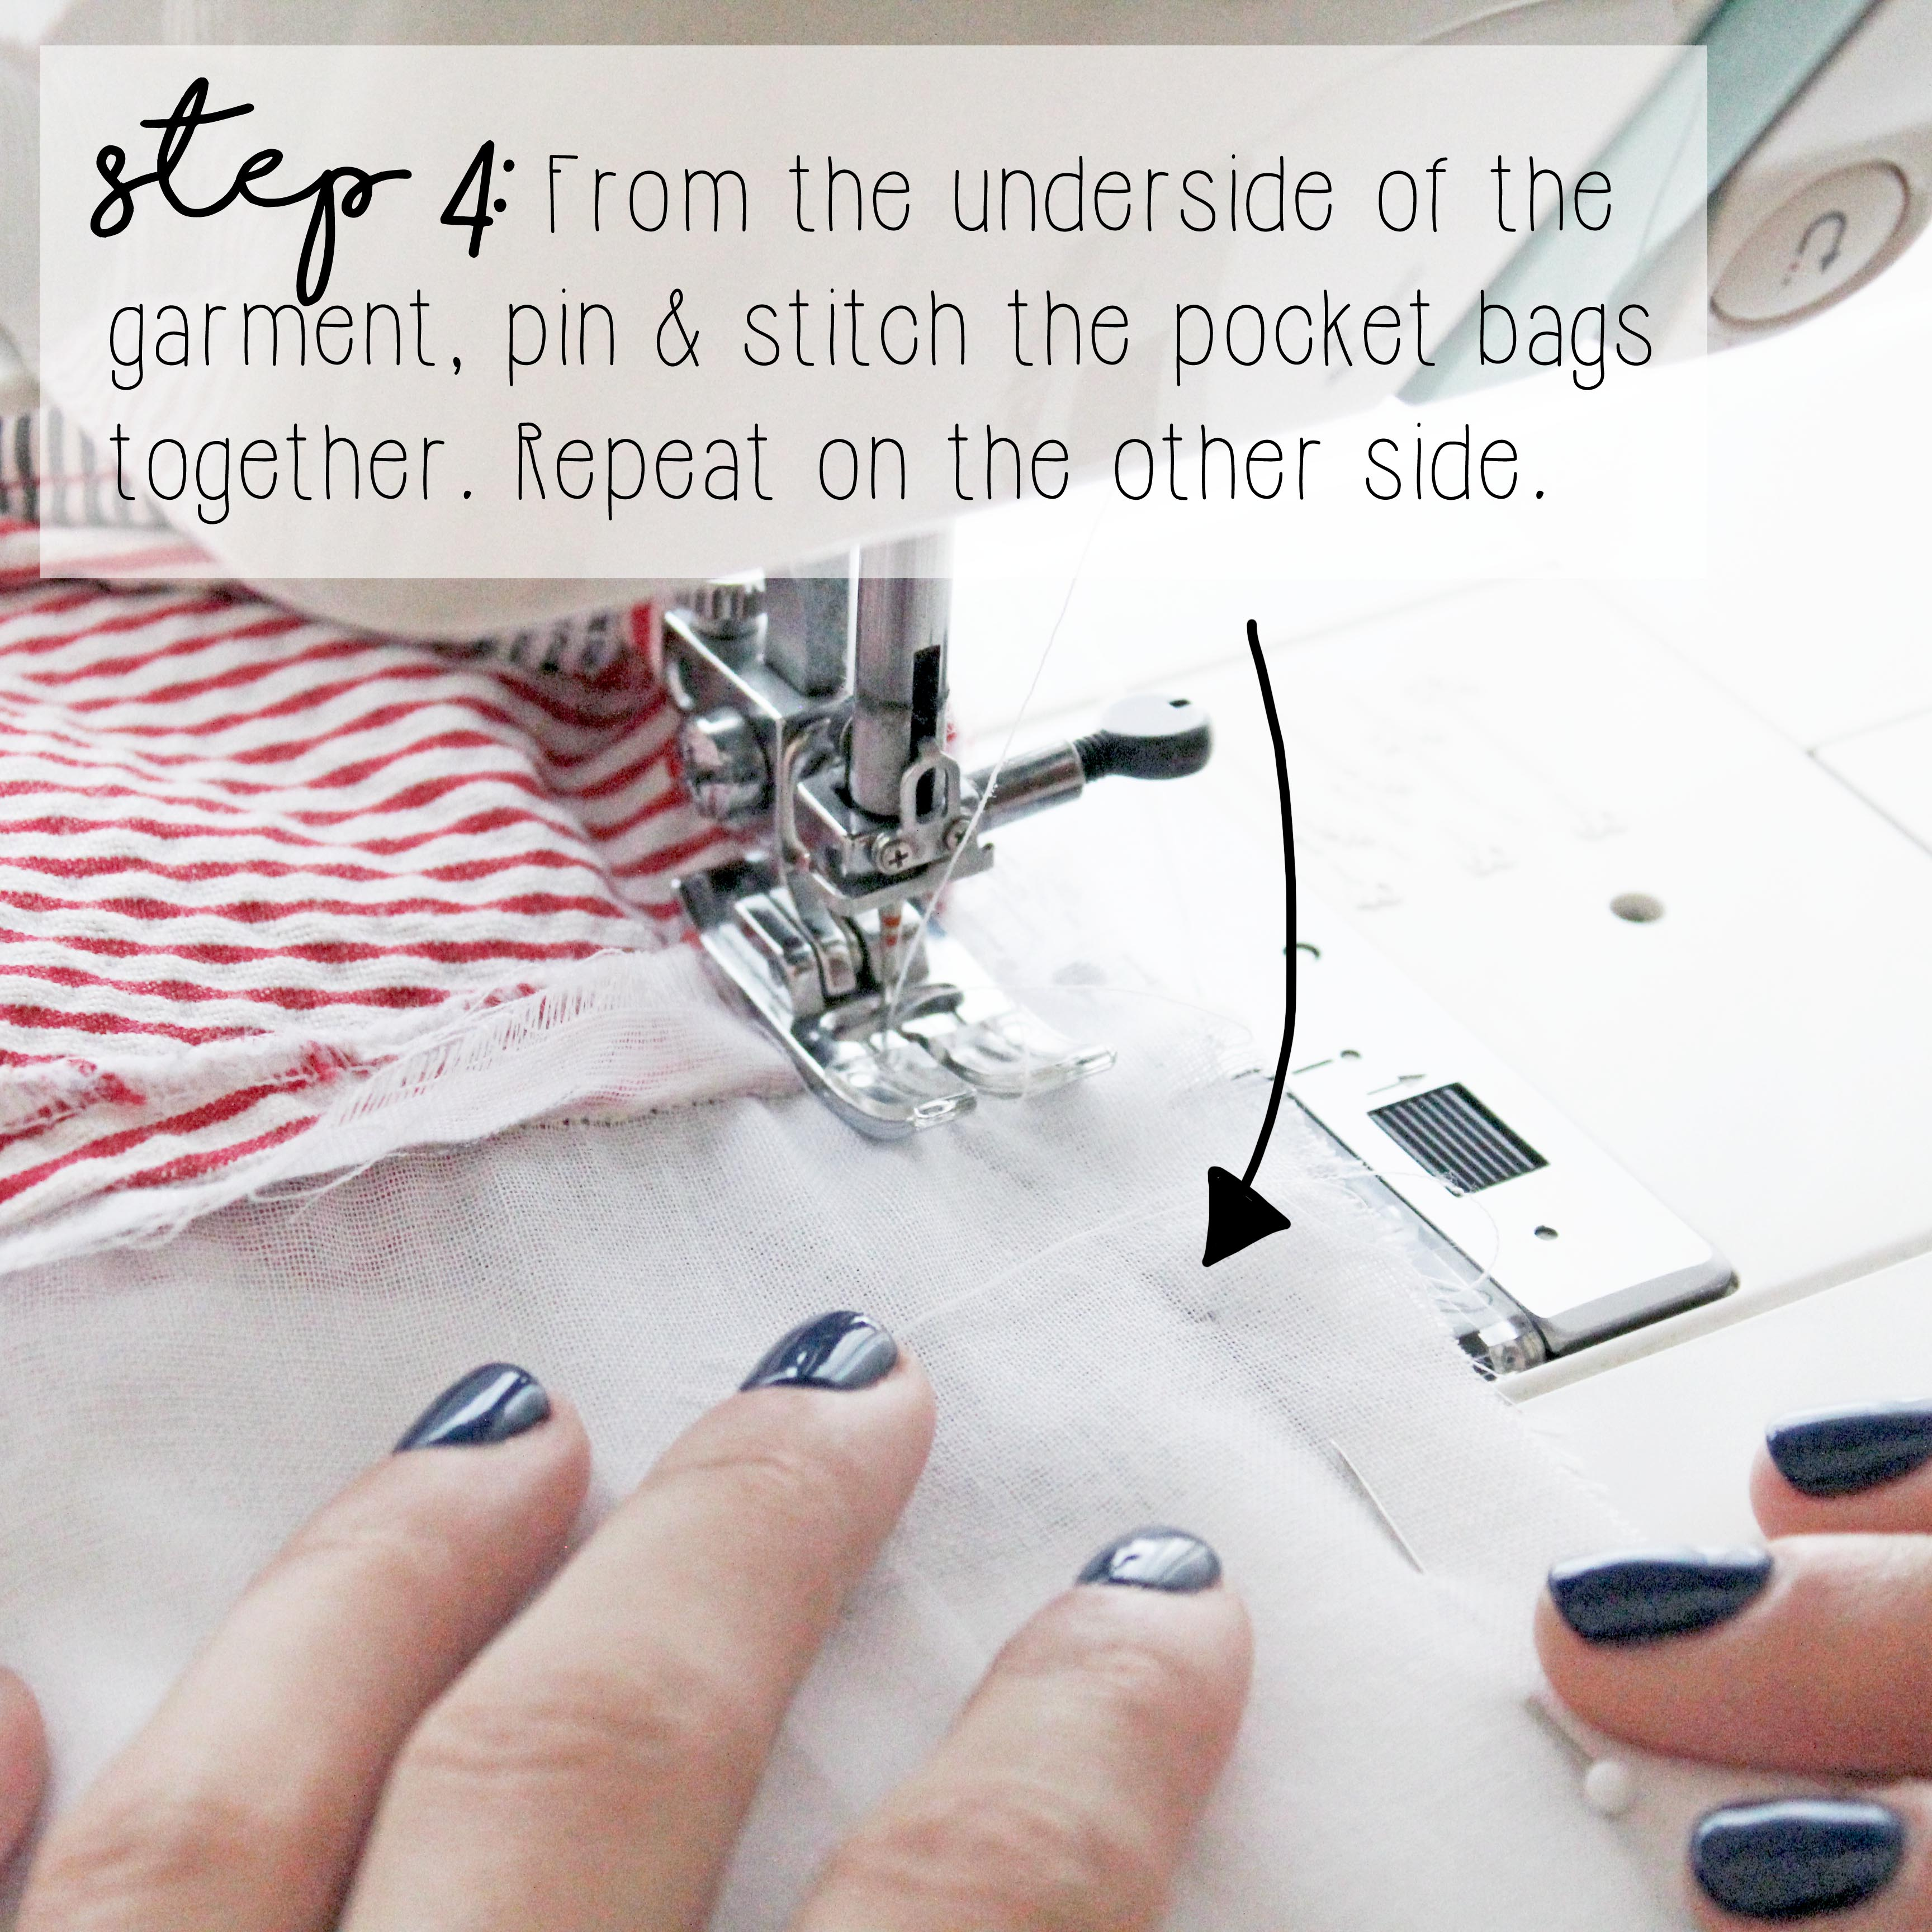 How To Add Side Pockets To A Dress: Step 4